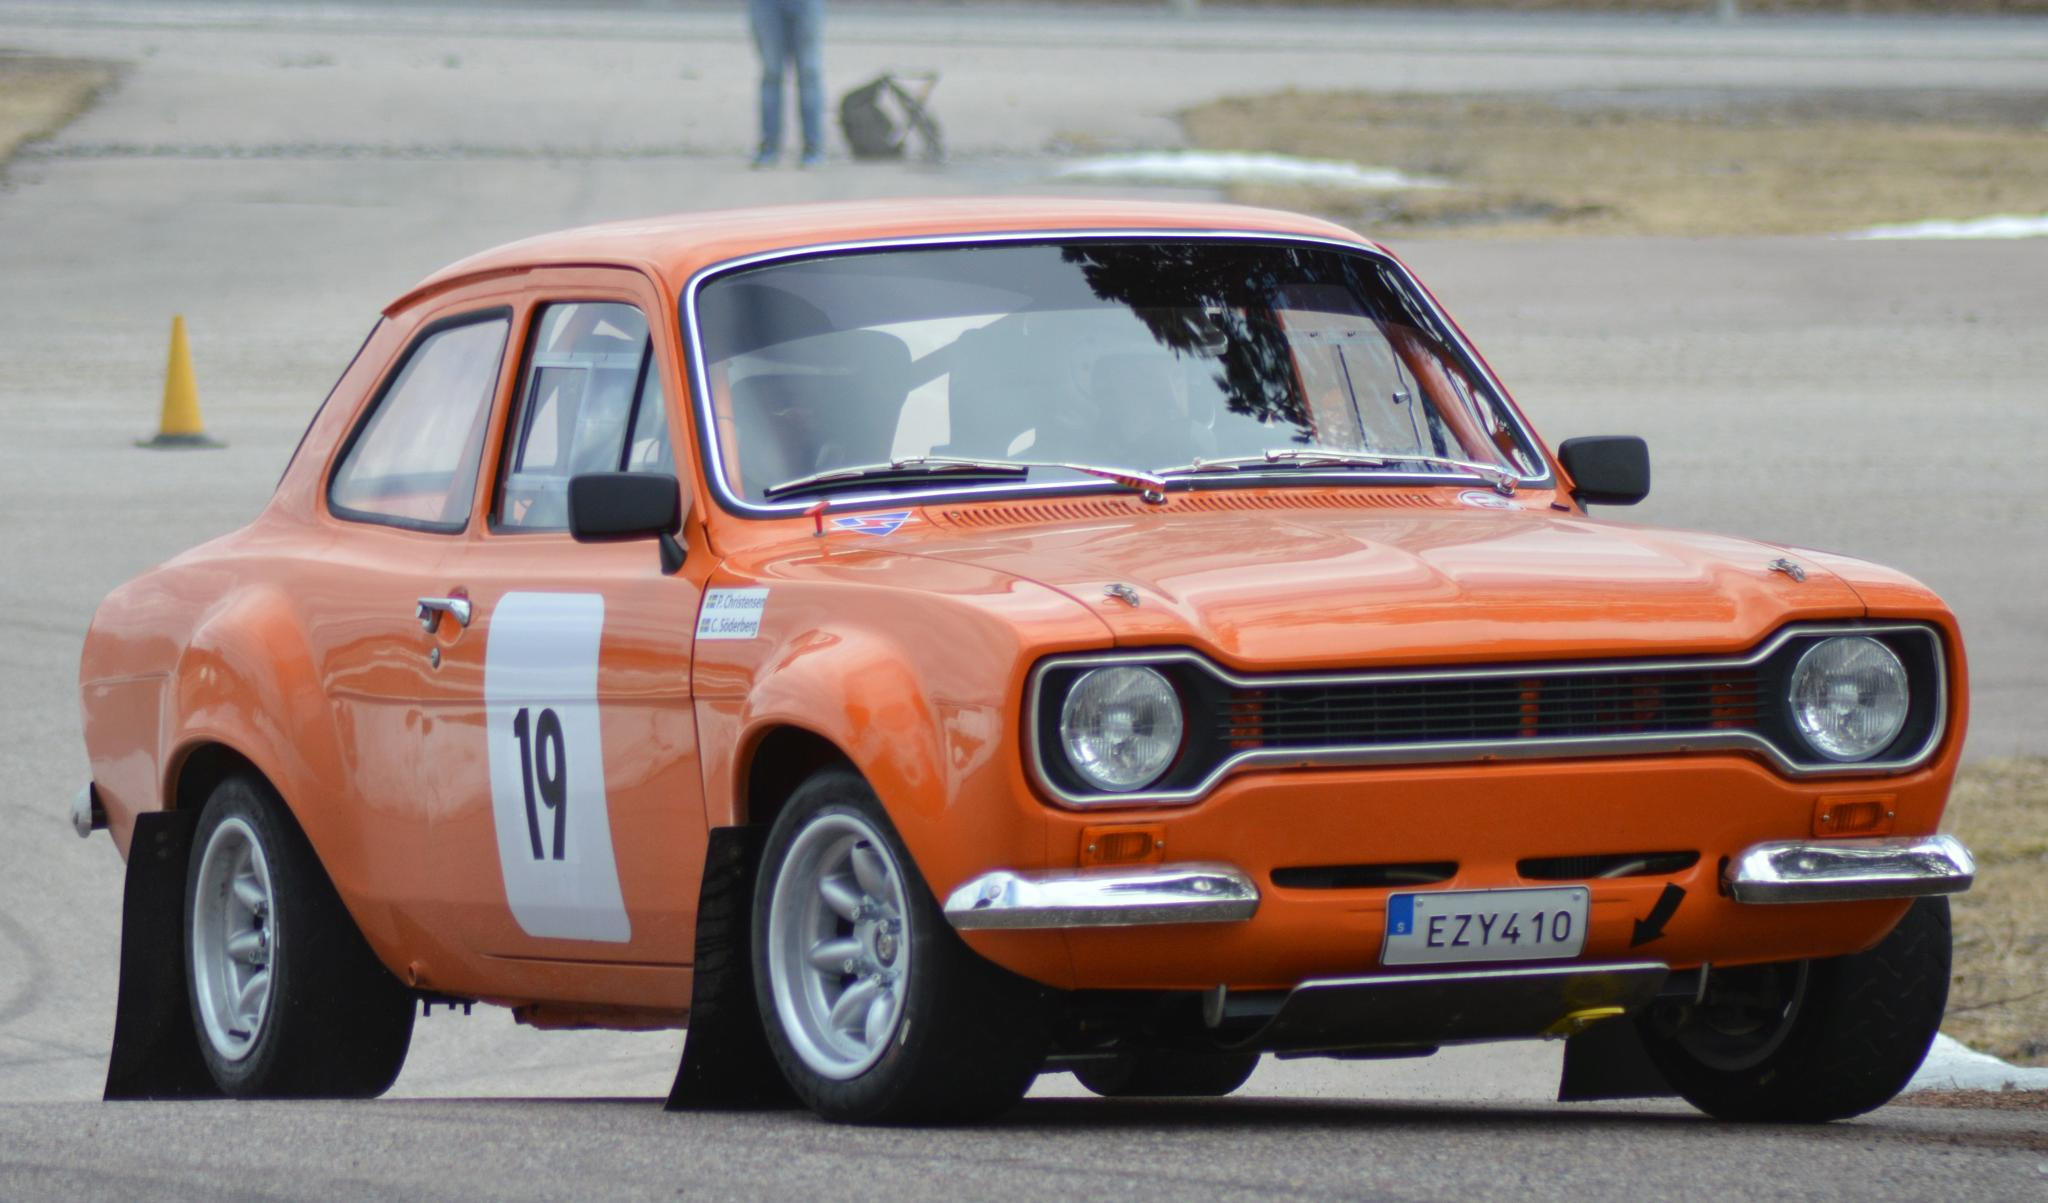 Ford Escort by Kåre